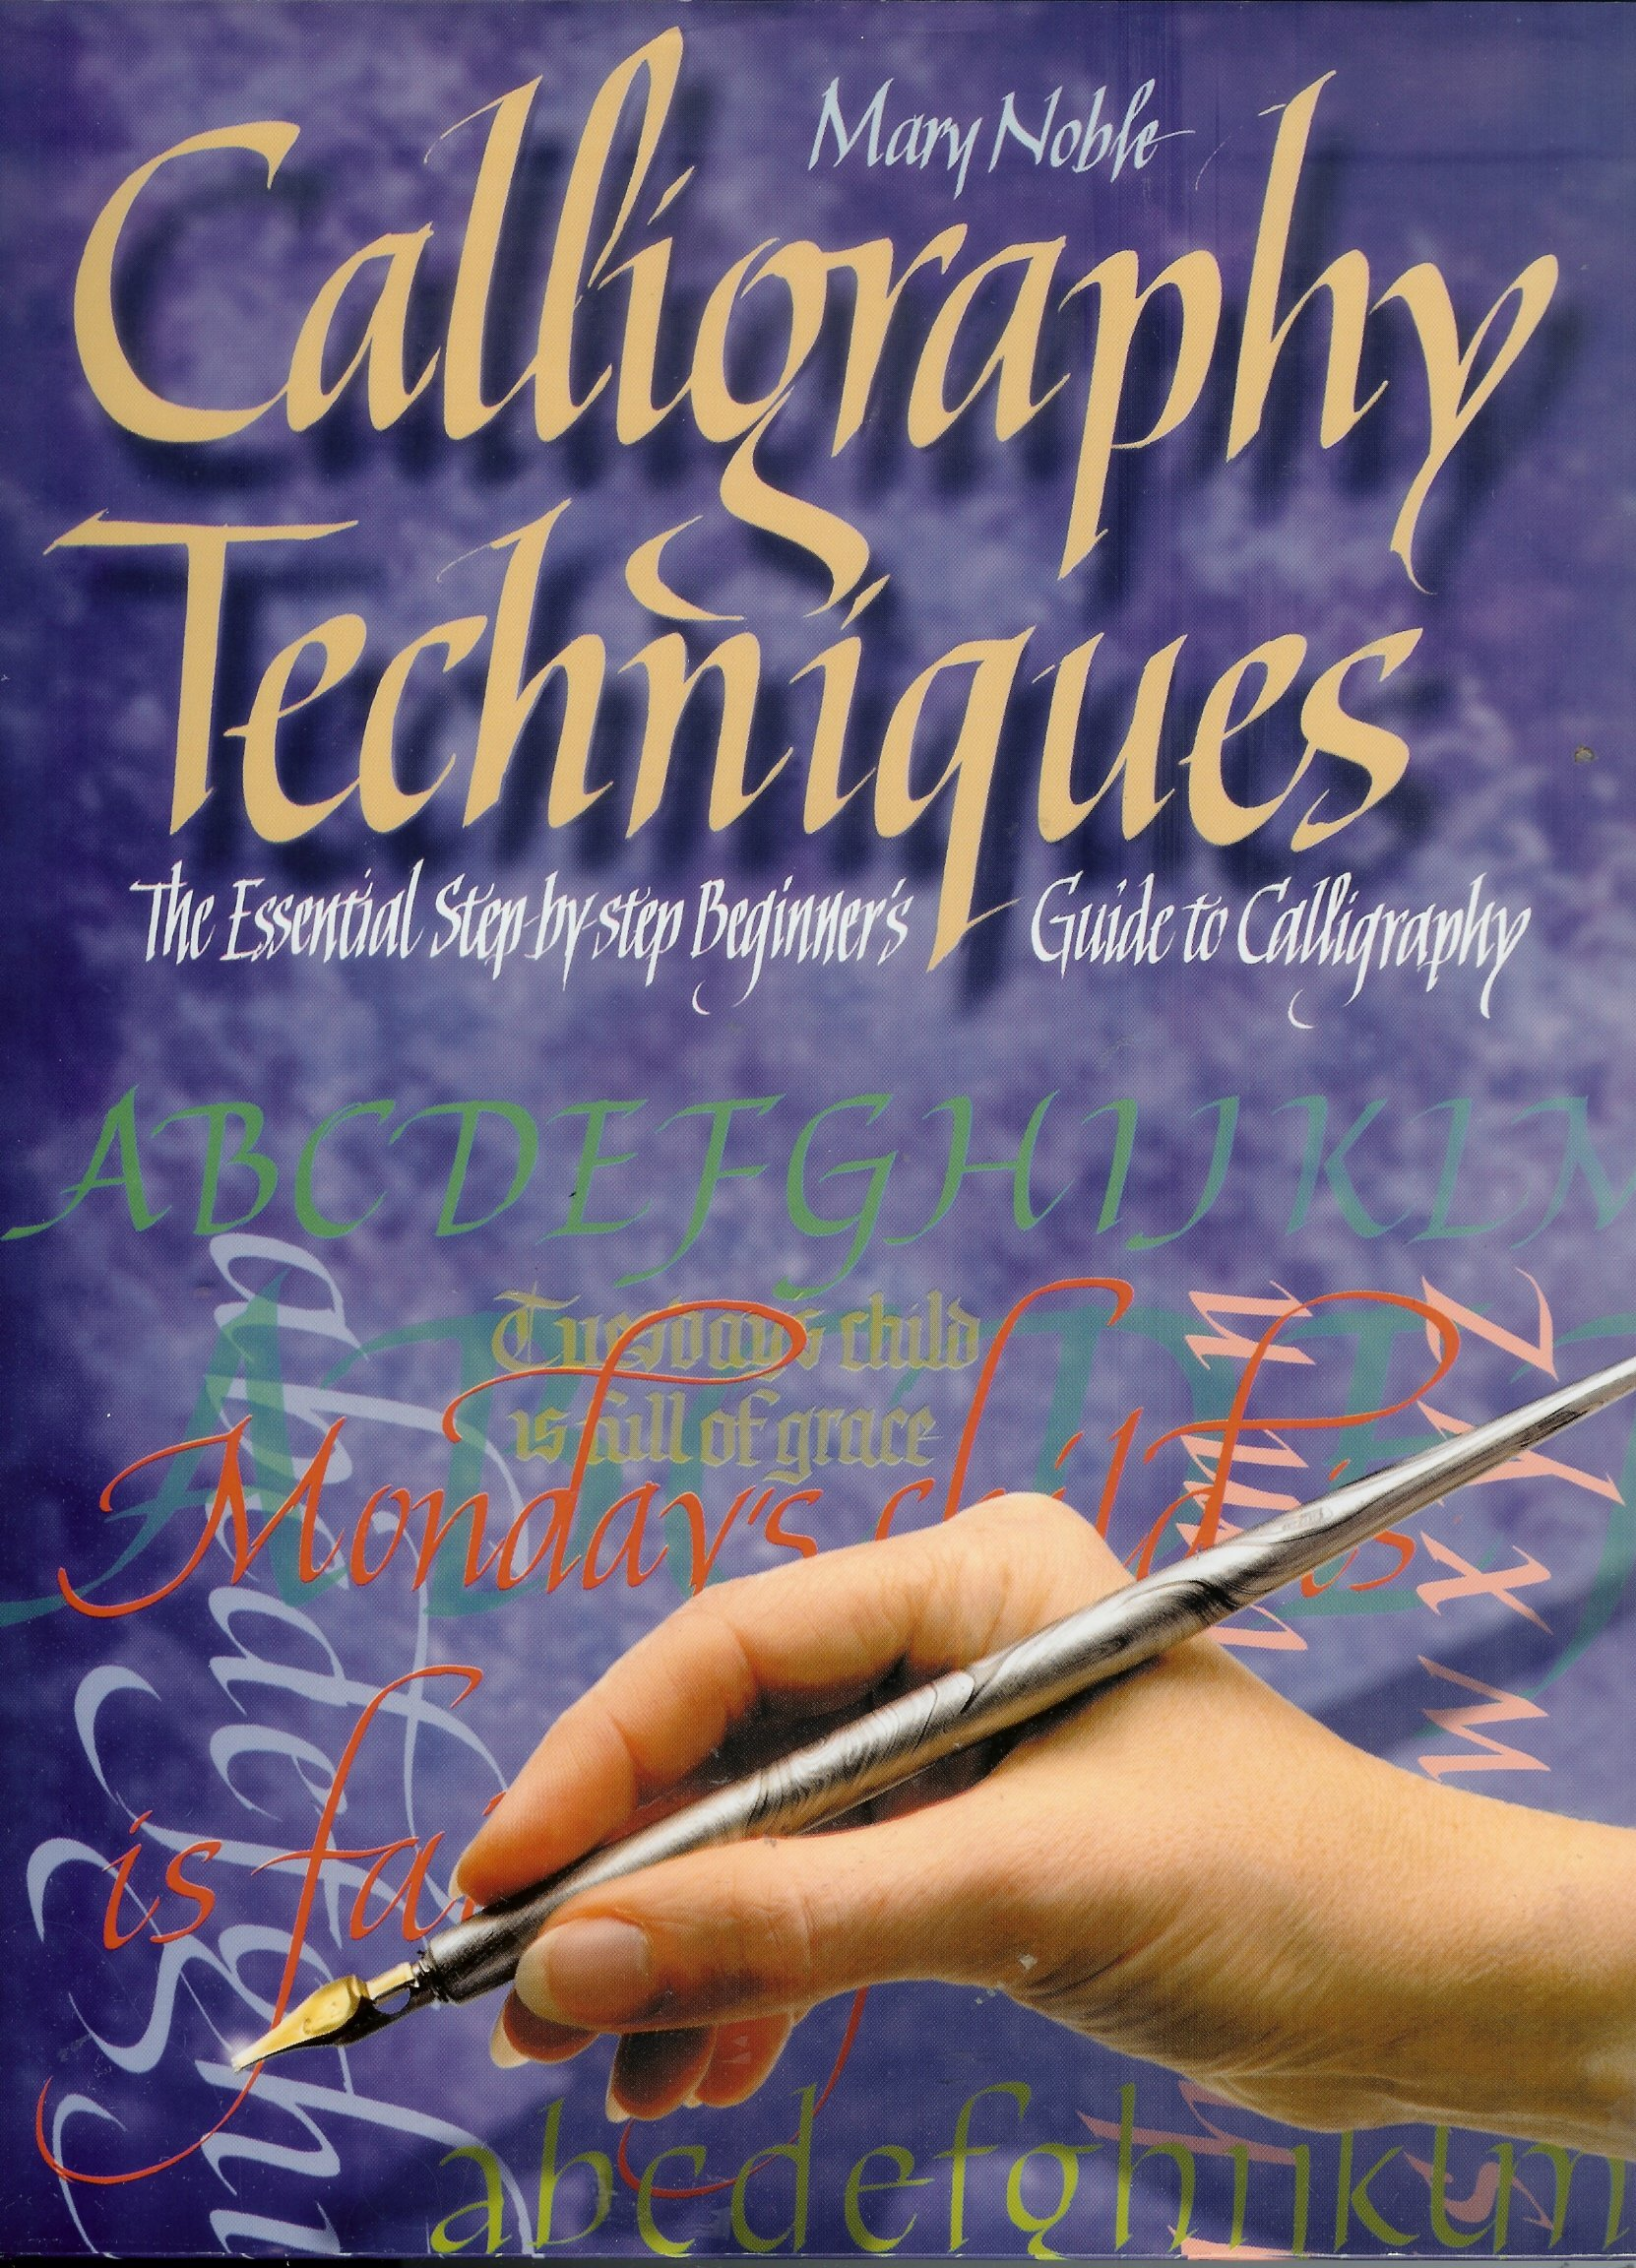 Read Online Calligraphy Techniques: The Essential Step-by-step Beginner's Guide to Calligraphy pdf epub